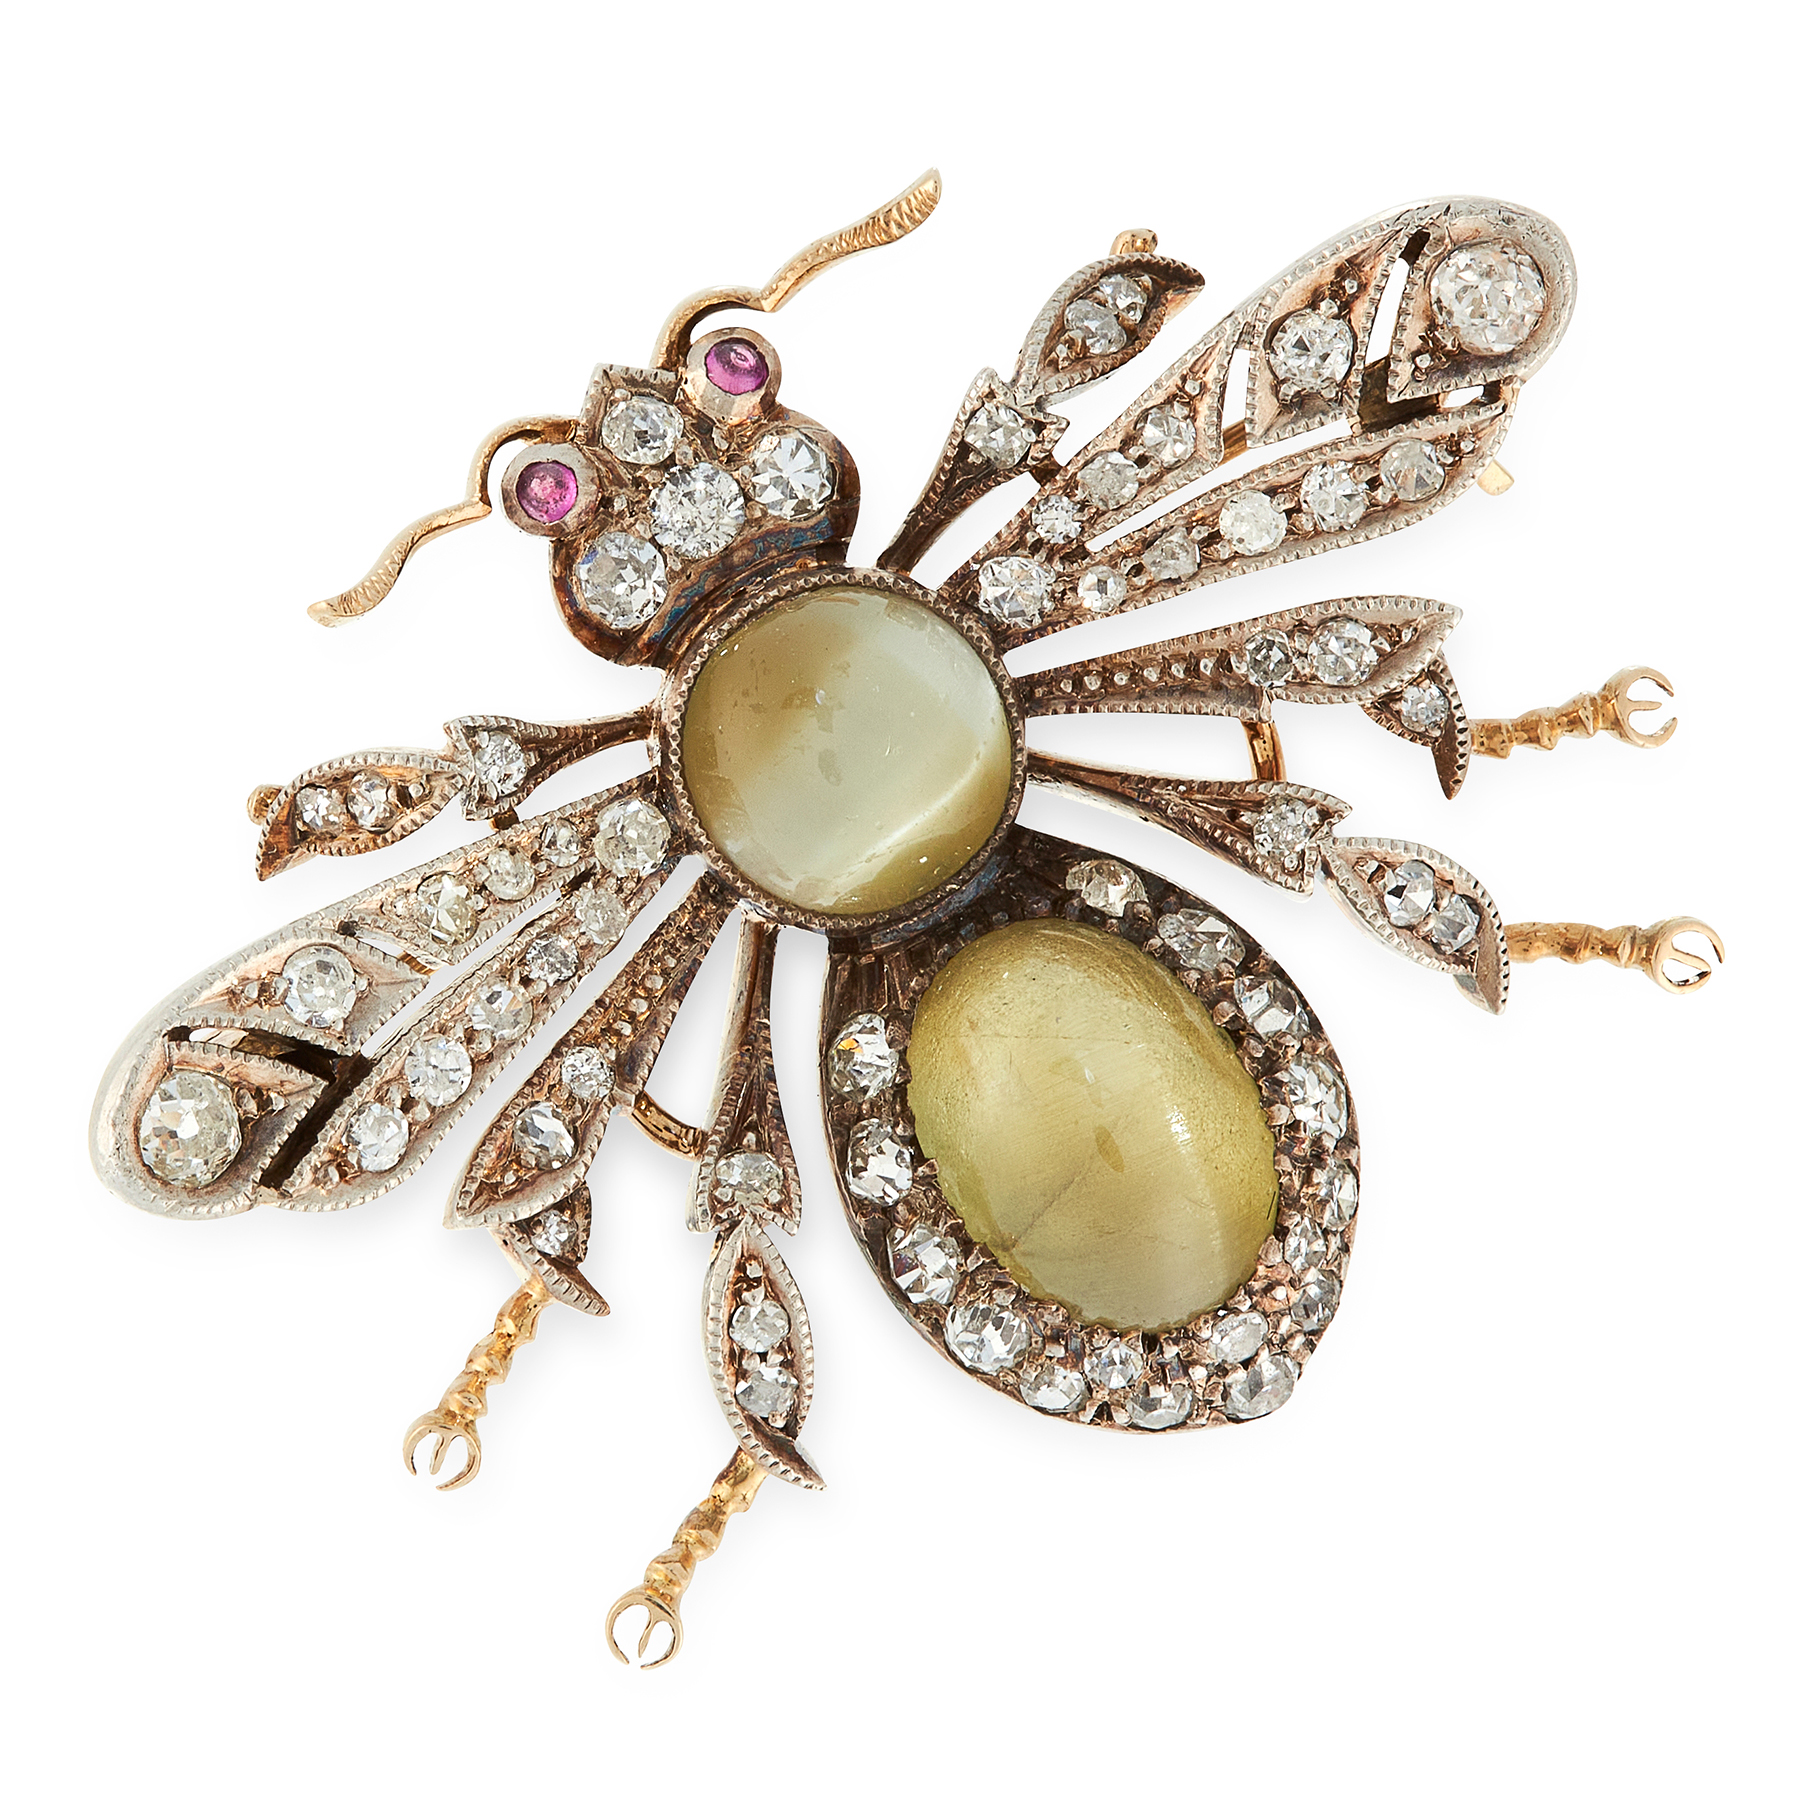 AN ANTIQUE CATS EYE CHRYSOBERYL, DIAMOND AND RUBY BEE BROOCH, 19TH CENTURY in yellow gold and - Image 2 of 2